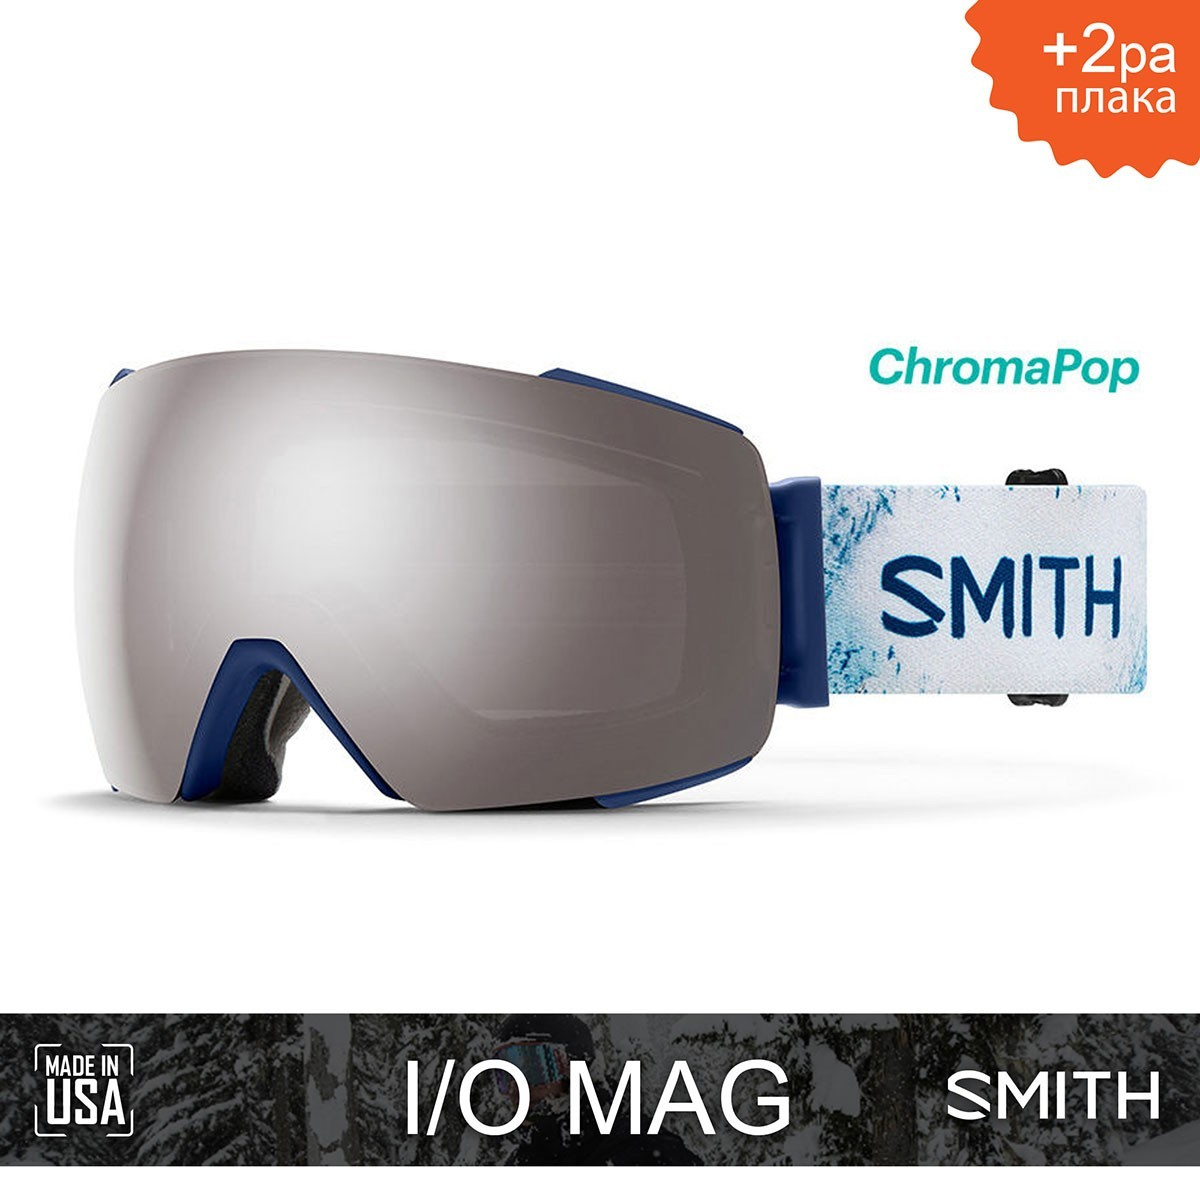 SMITH IO MAG AC Elias Alhardt | S3 CHROMAPOP Sun Platinum Mirror - Изображение - AQUAMATRIX